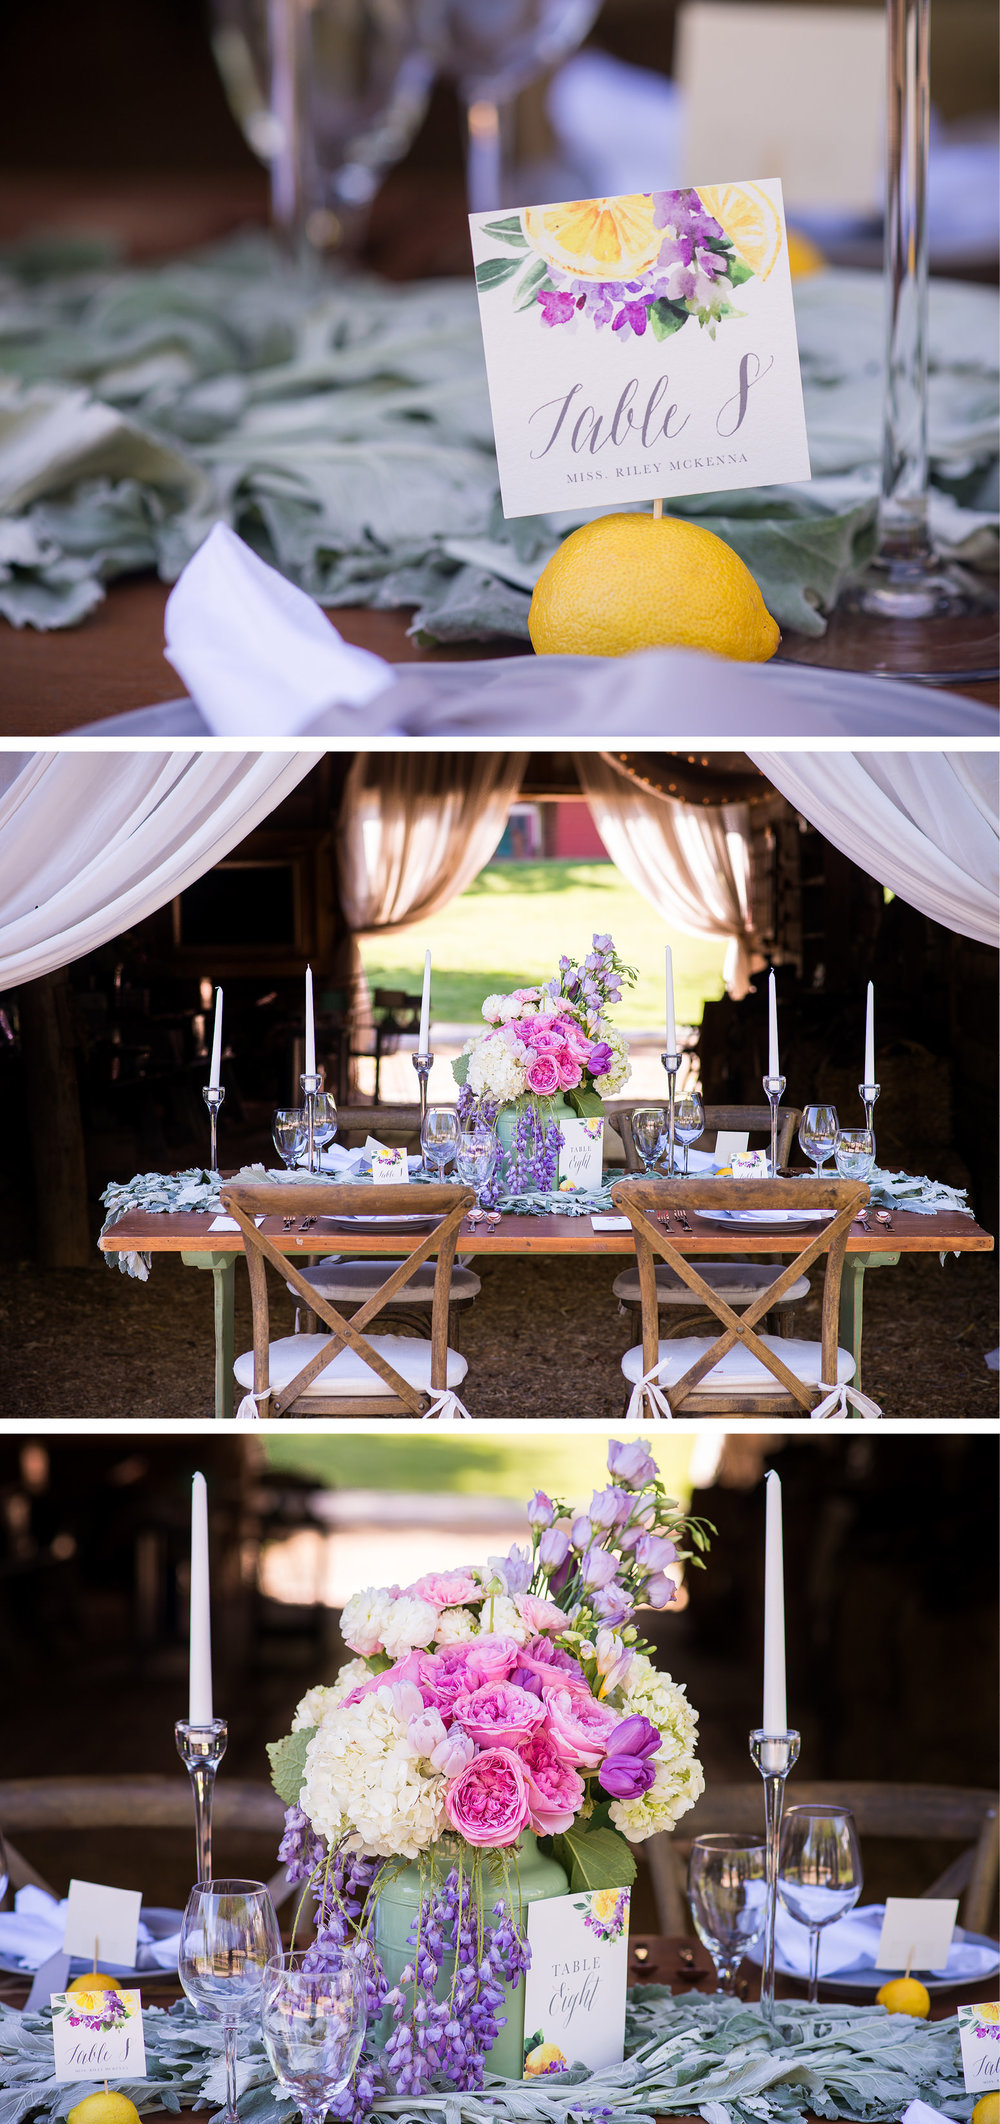 Charlotte-Wedding-Stationer-Lemon-and-Lavender-Styled-Shoot-Magnificent-Moments-Cami-Ann4.jpg